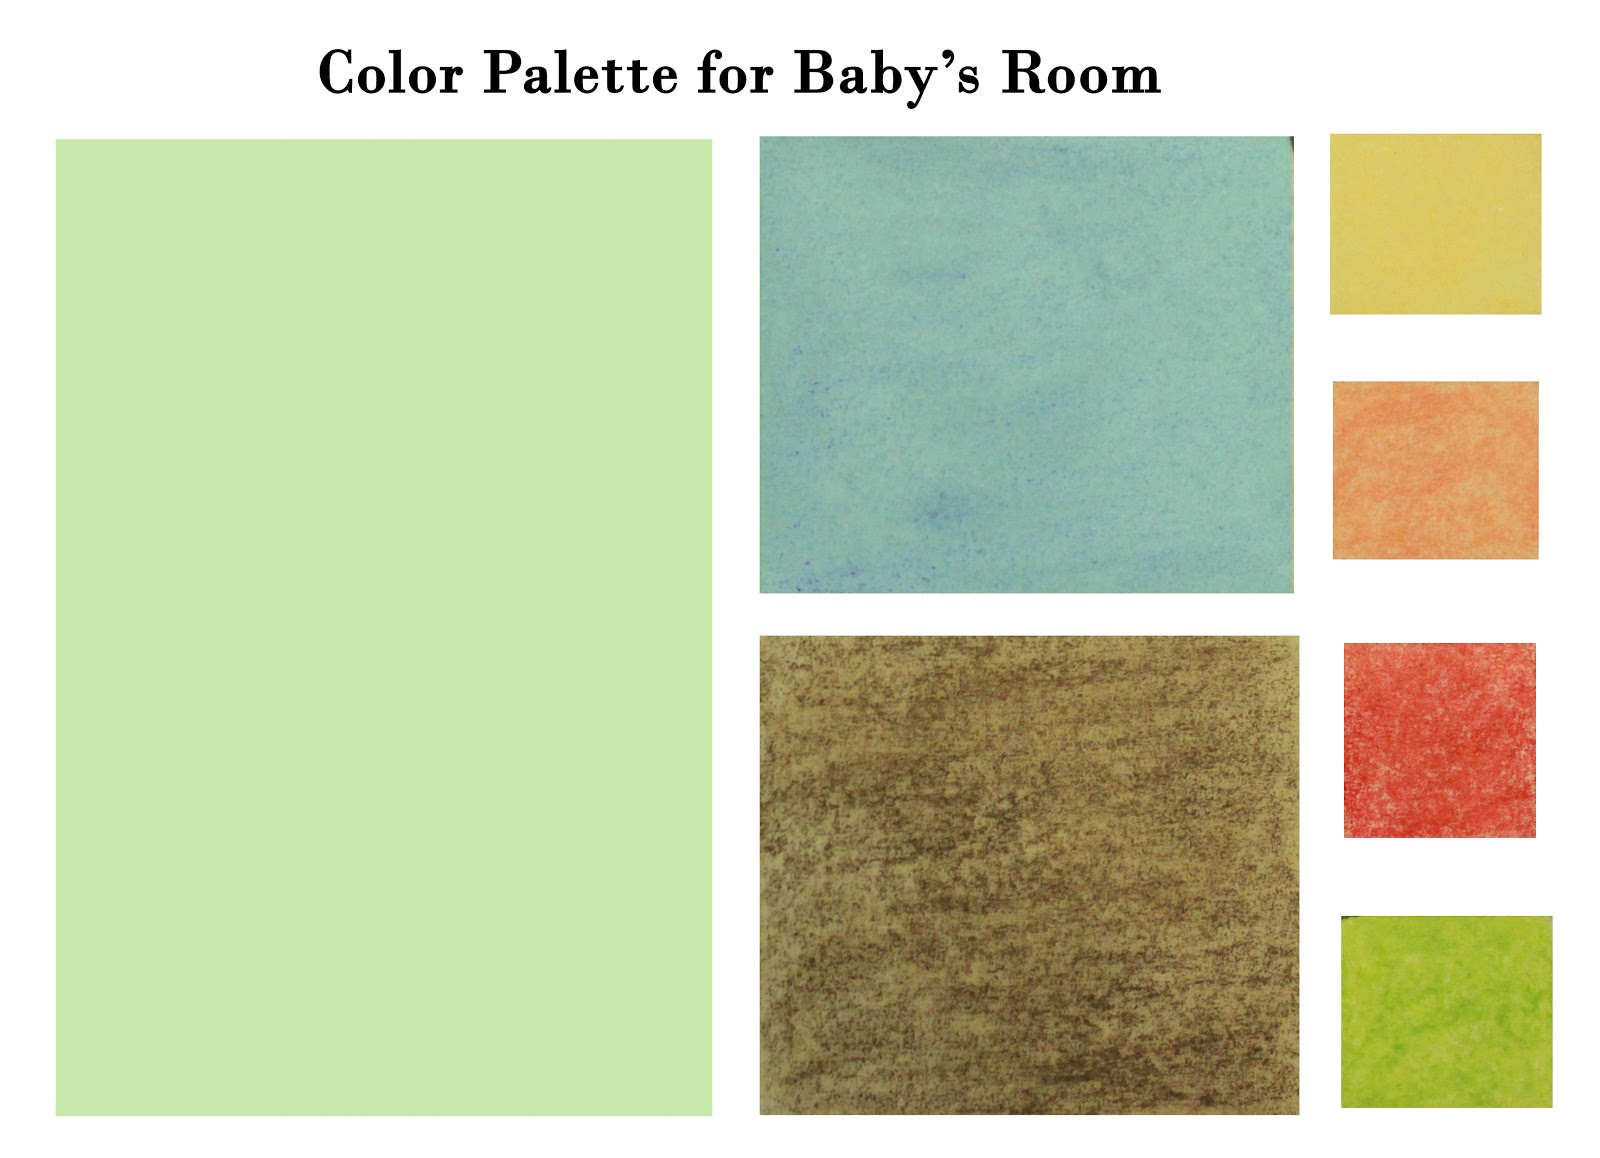 This Life... ...a Prologue: Baby Room Color Palette